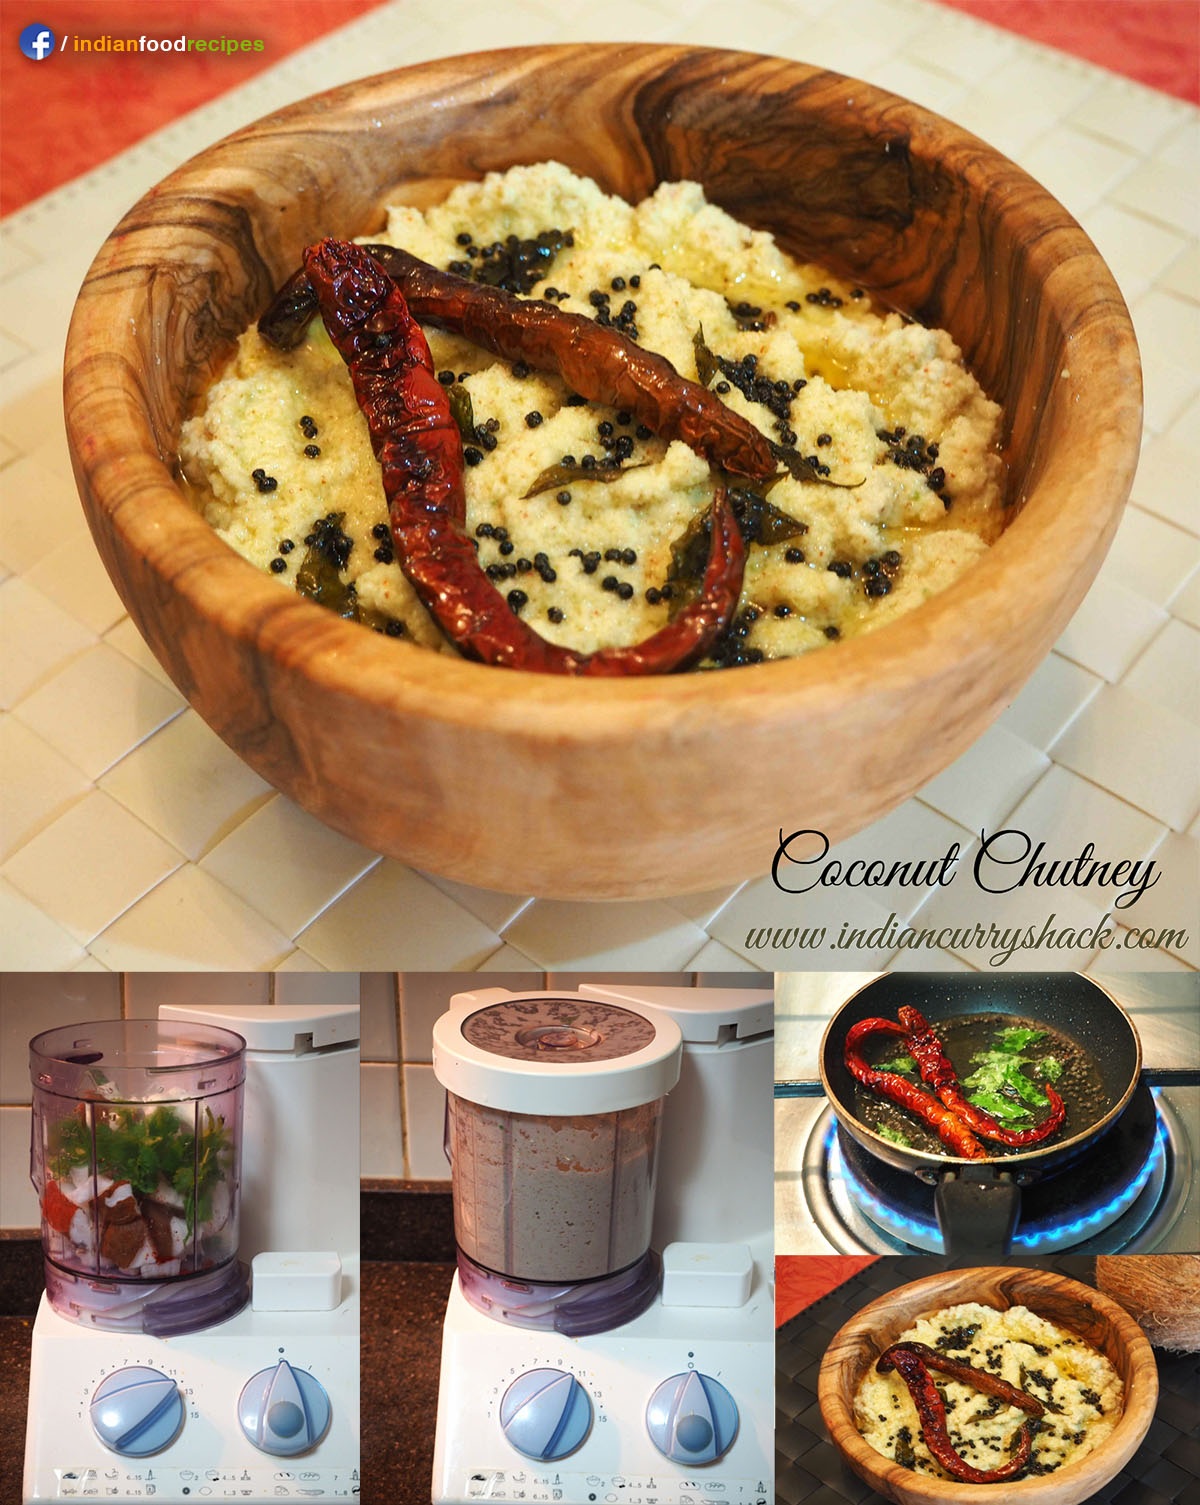 Coconut Chutney / Nariyal ki Chutney recipe step by step